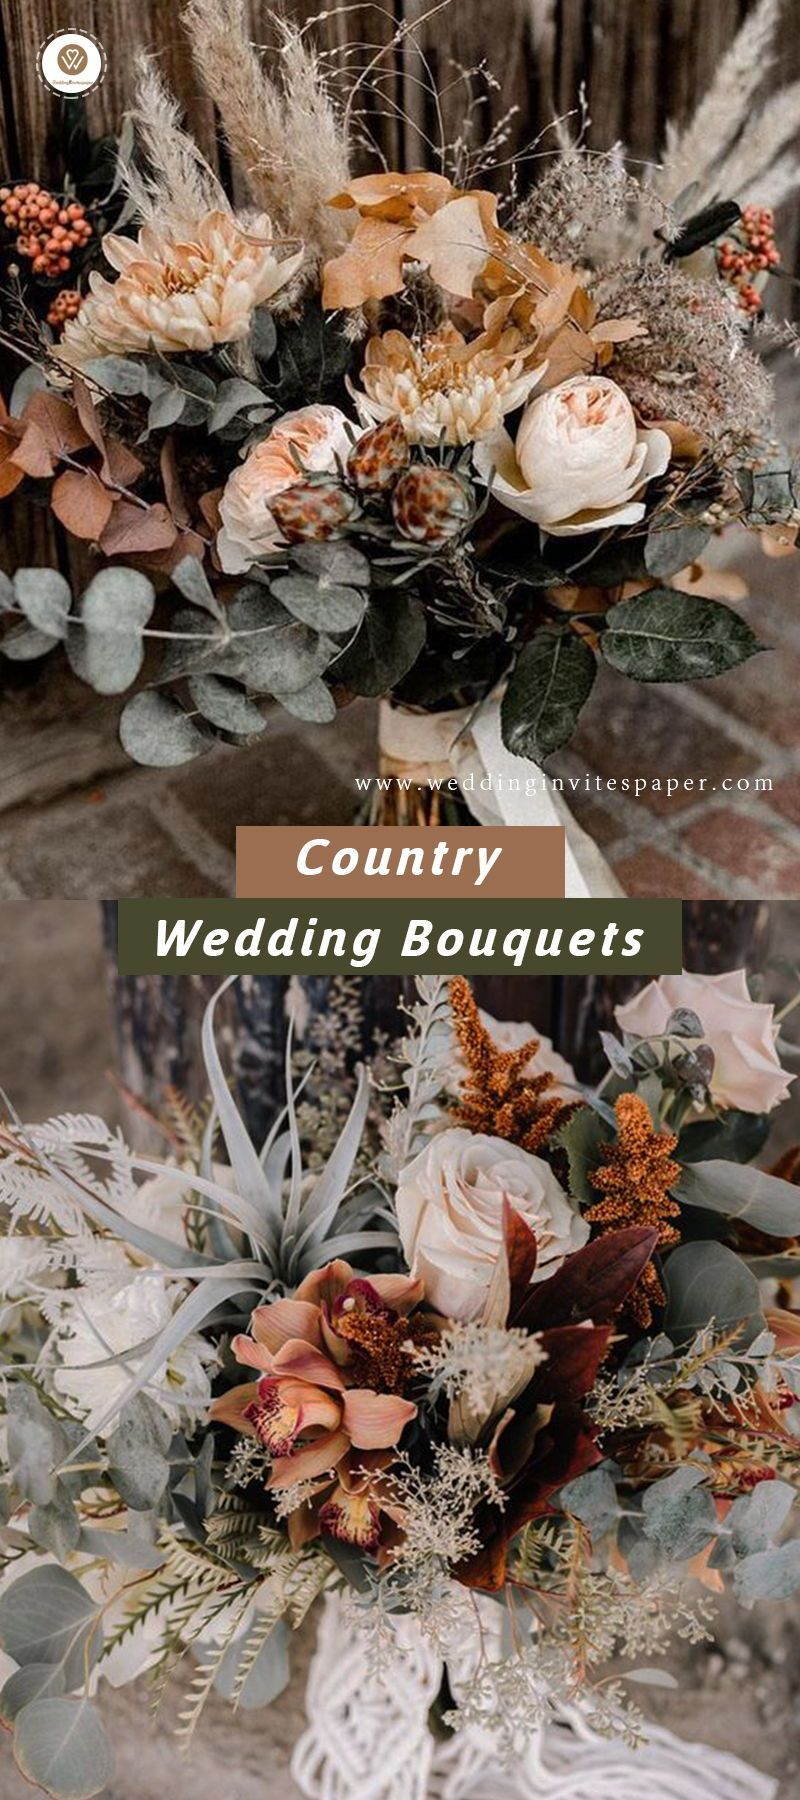 35 Rustic Wedding Decorations #fallbridalbouquets